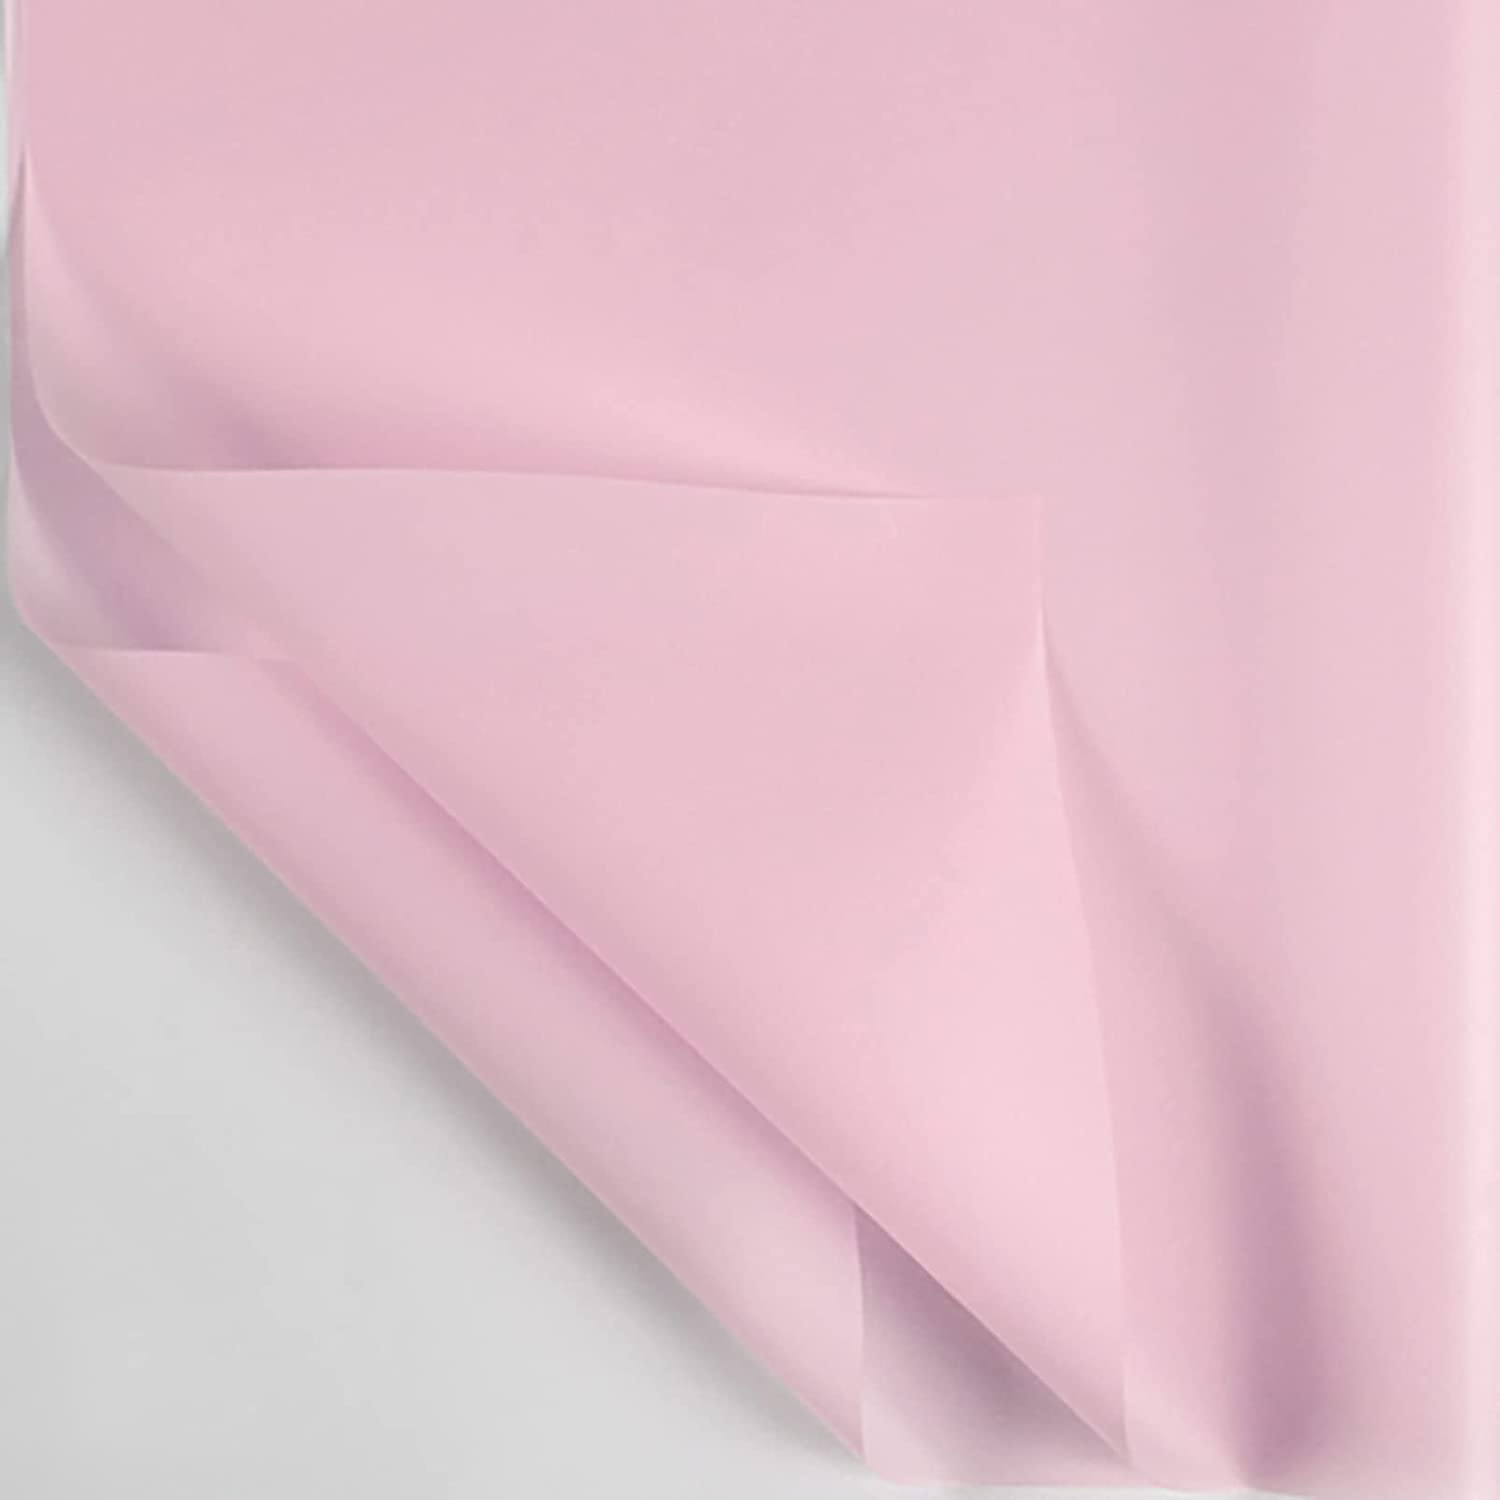 wholesale Pearl Pink San Jose Mall Cellophane Pure Color Flower Pape Waterproof Wrapping